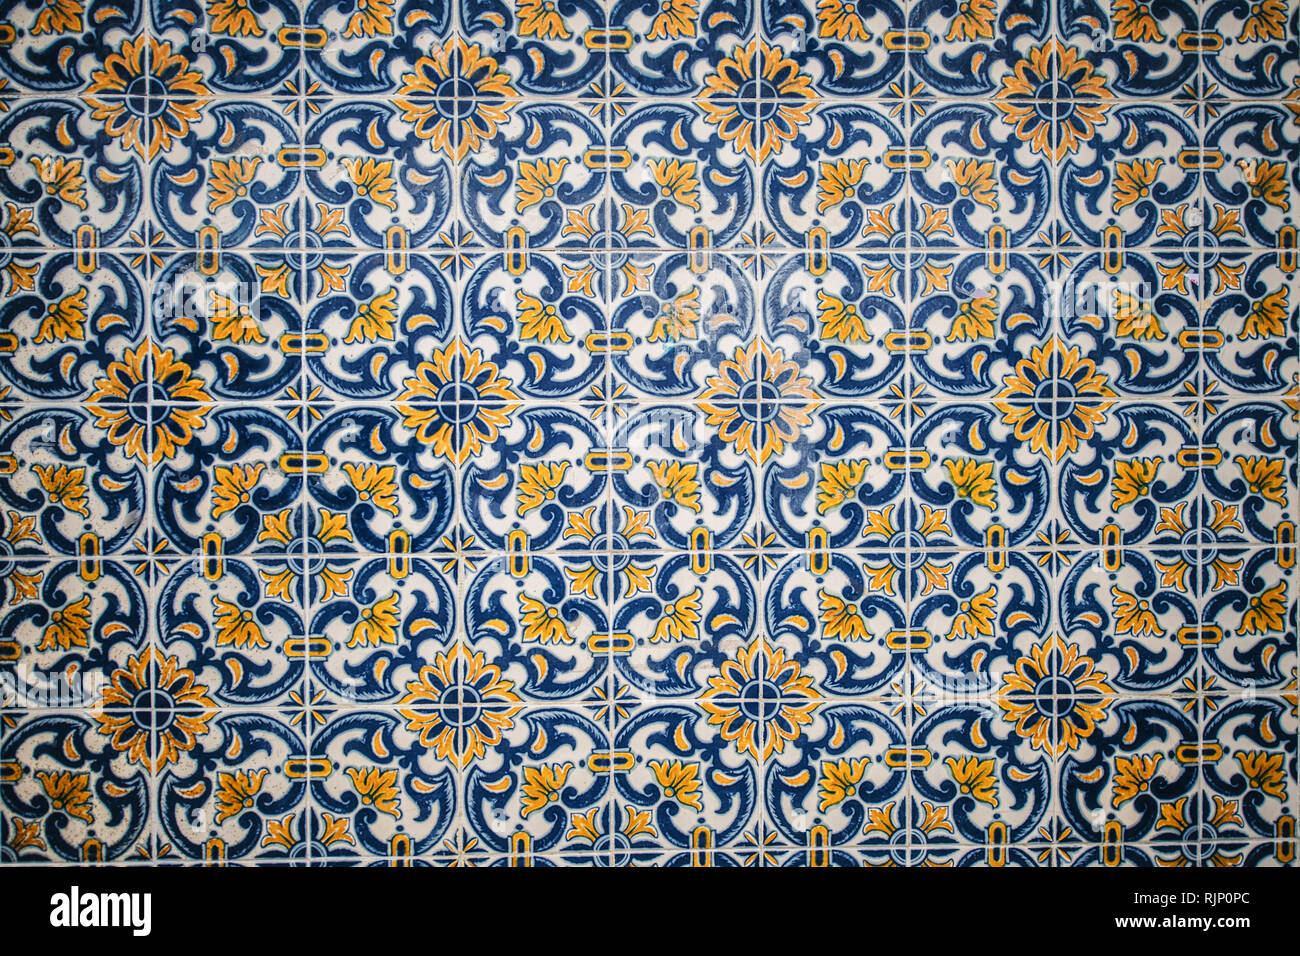 Background of wall in ornamental azulejos tiles in beautiful blue and yellow colored design - Stock Image